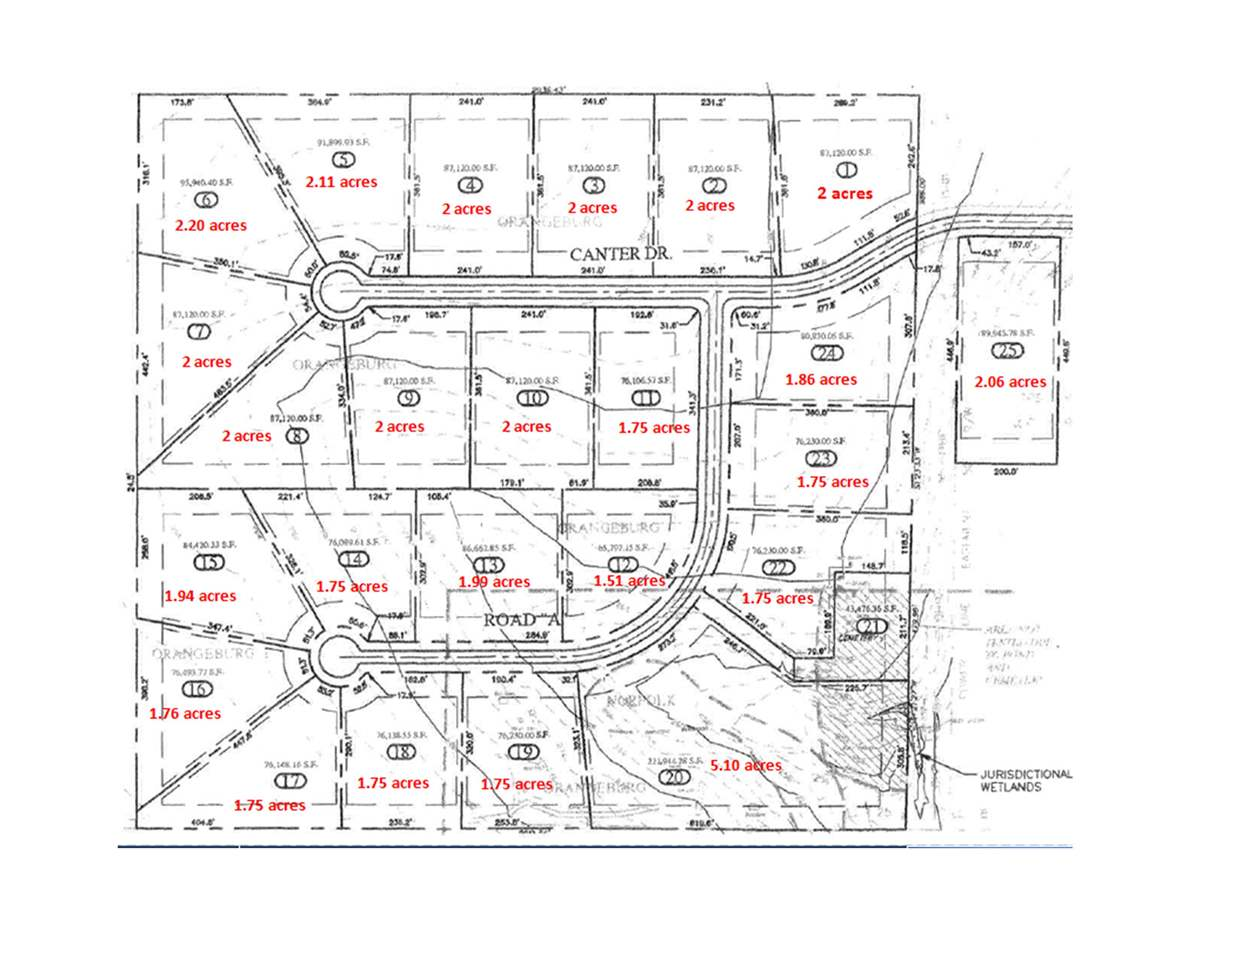 Lot 4 The Farm - Phase 2 , Perry, GA 31069